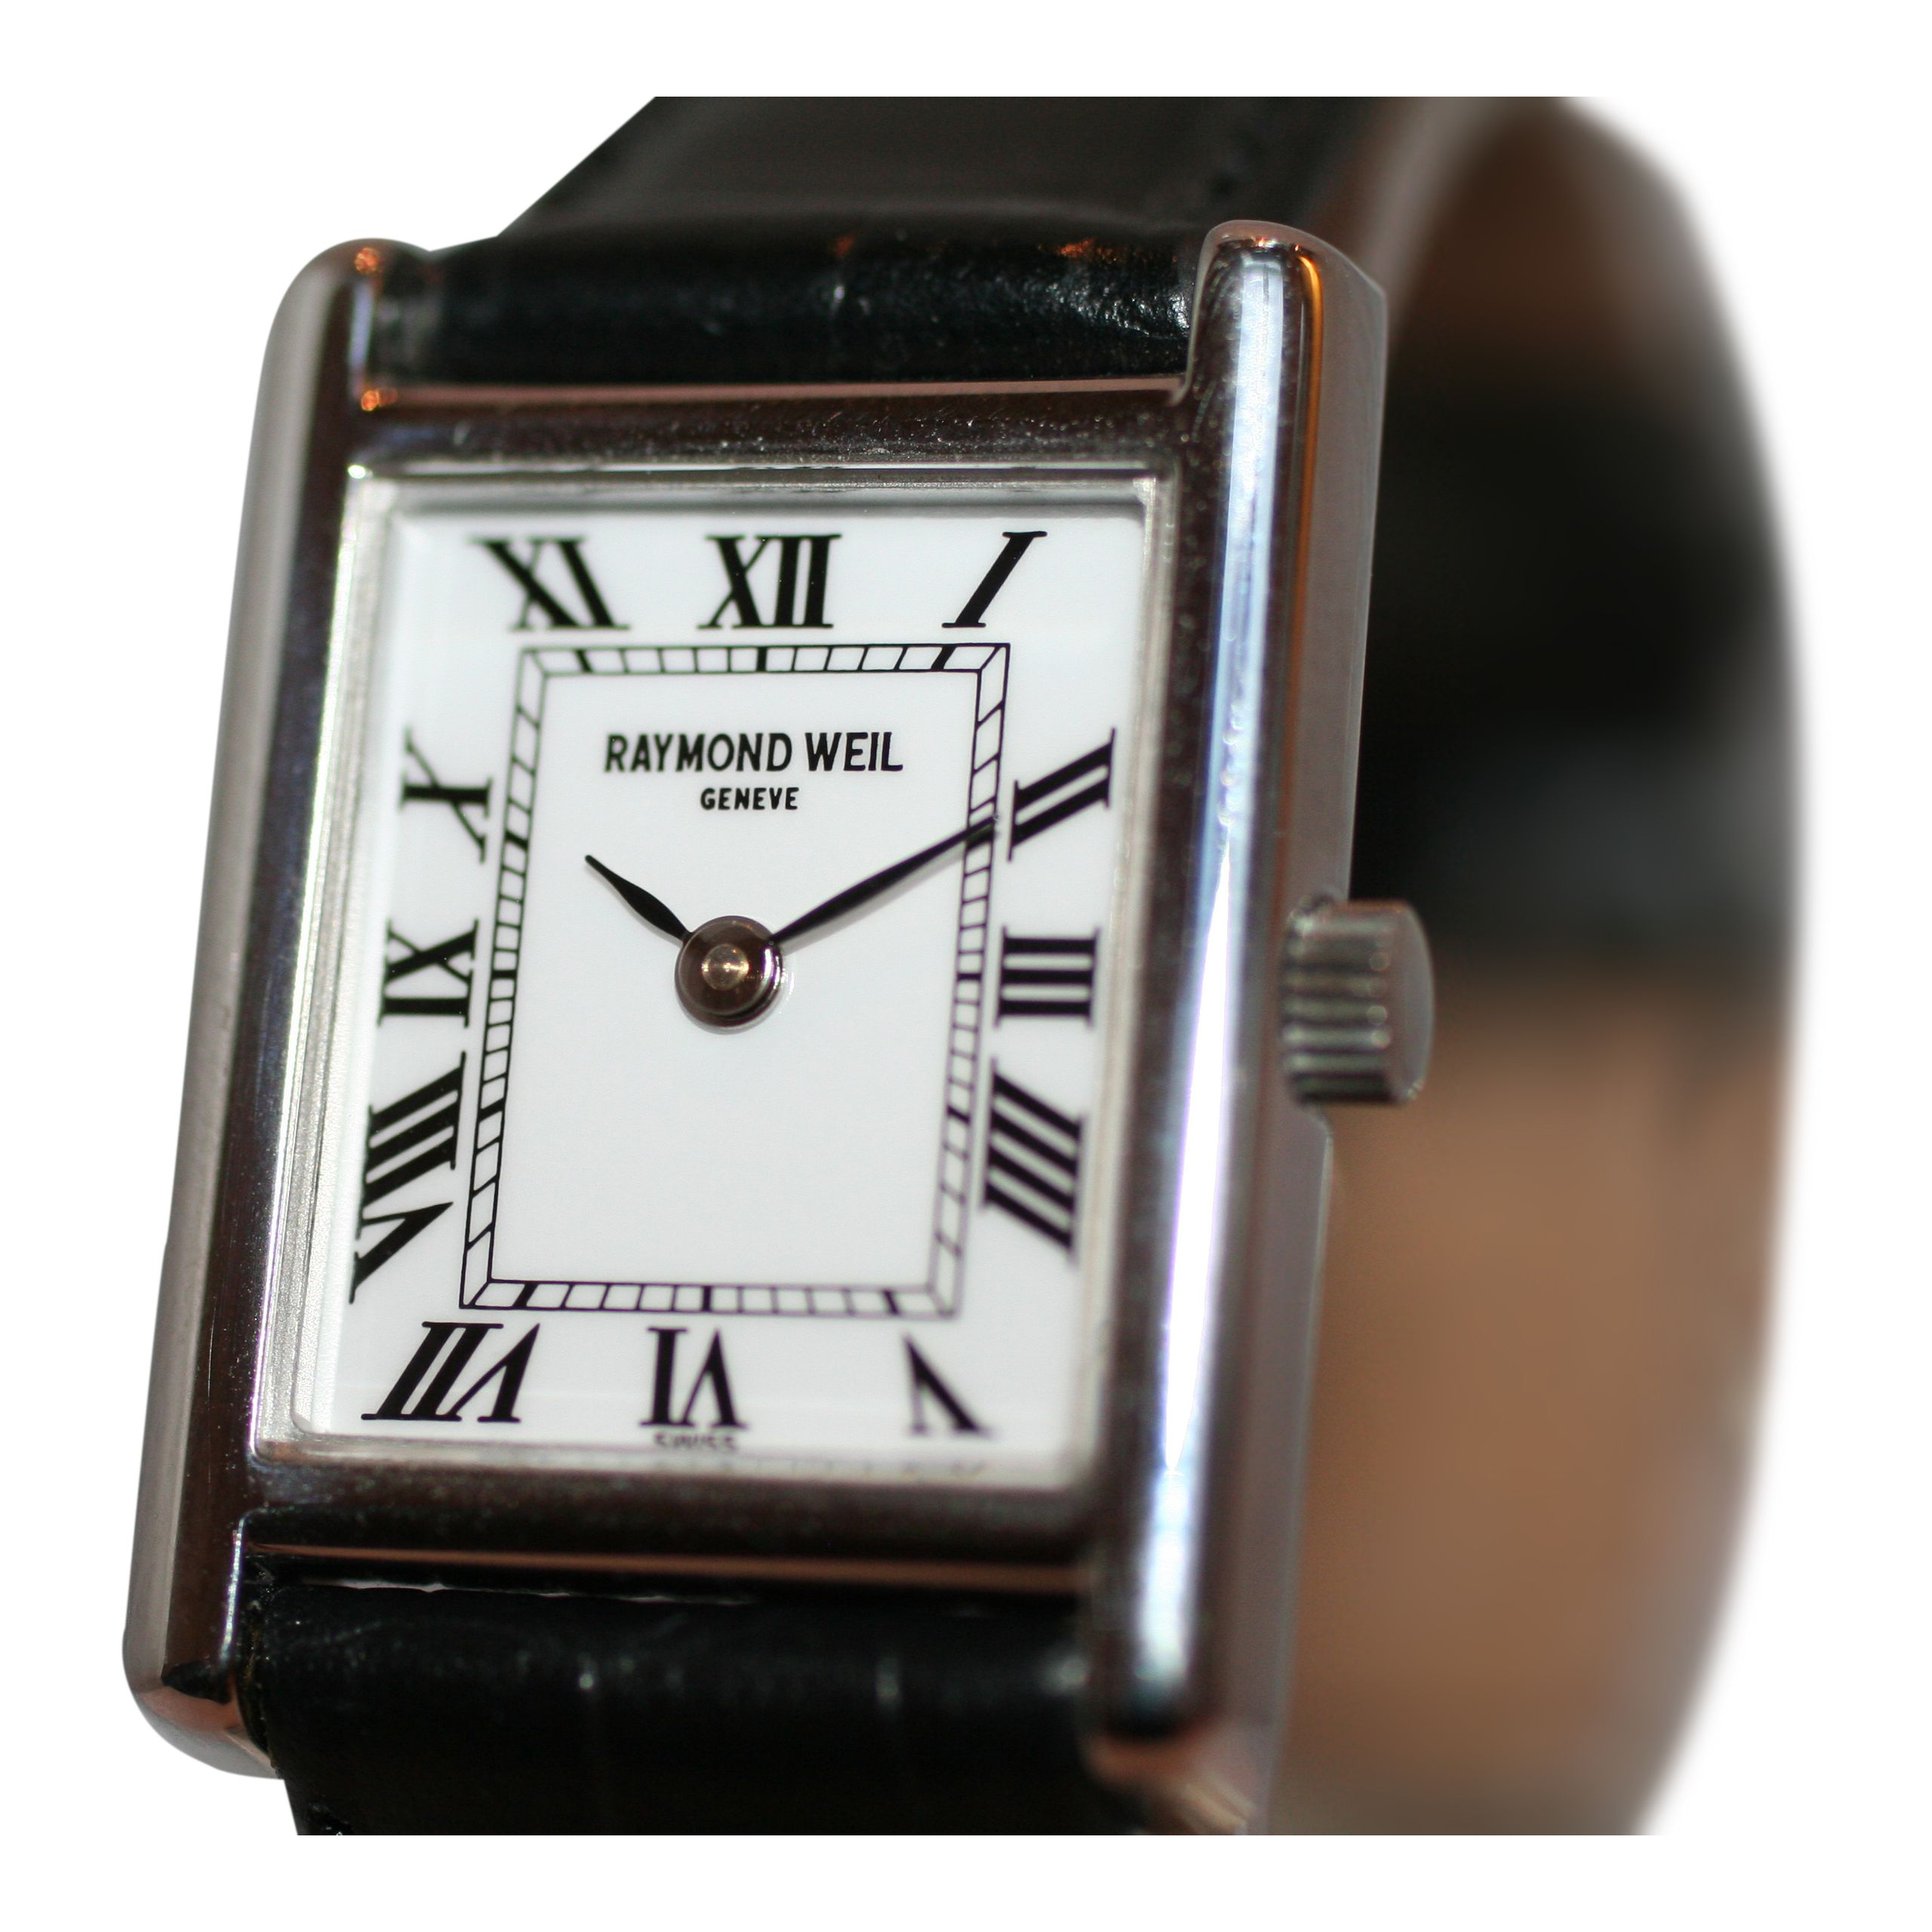 similar tango watch repair london problem service weil quality watches uk raymond